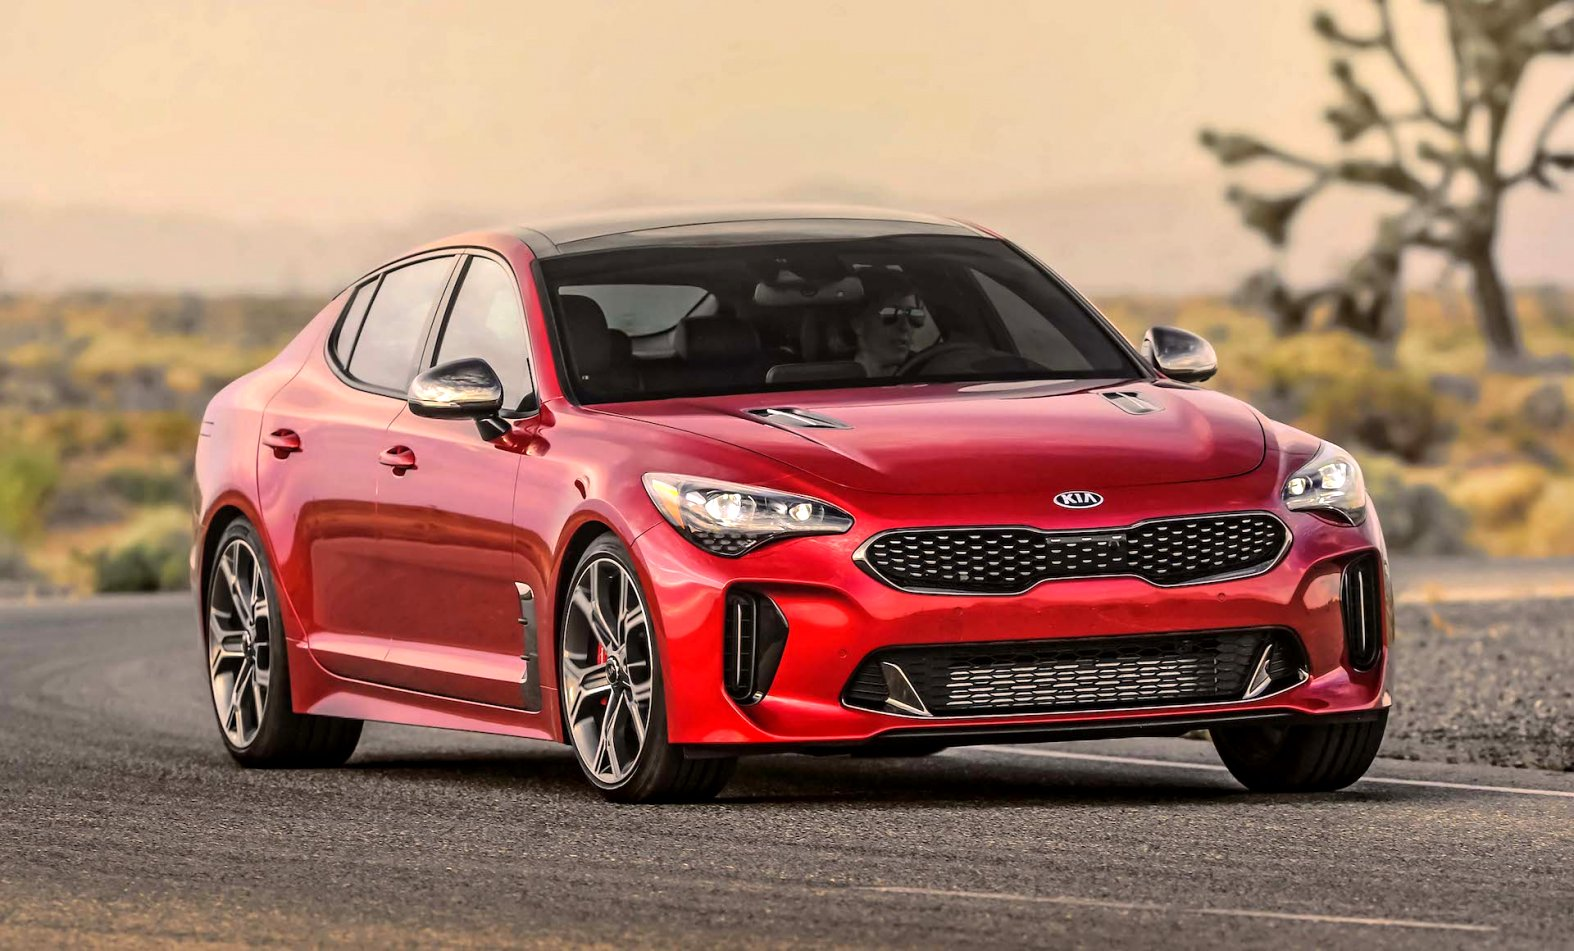 2020 kia cars Research New